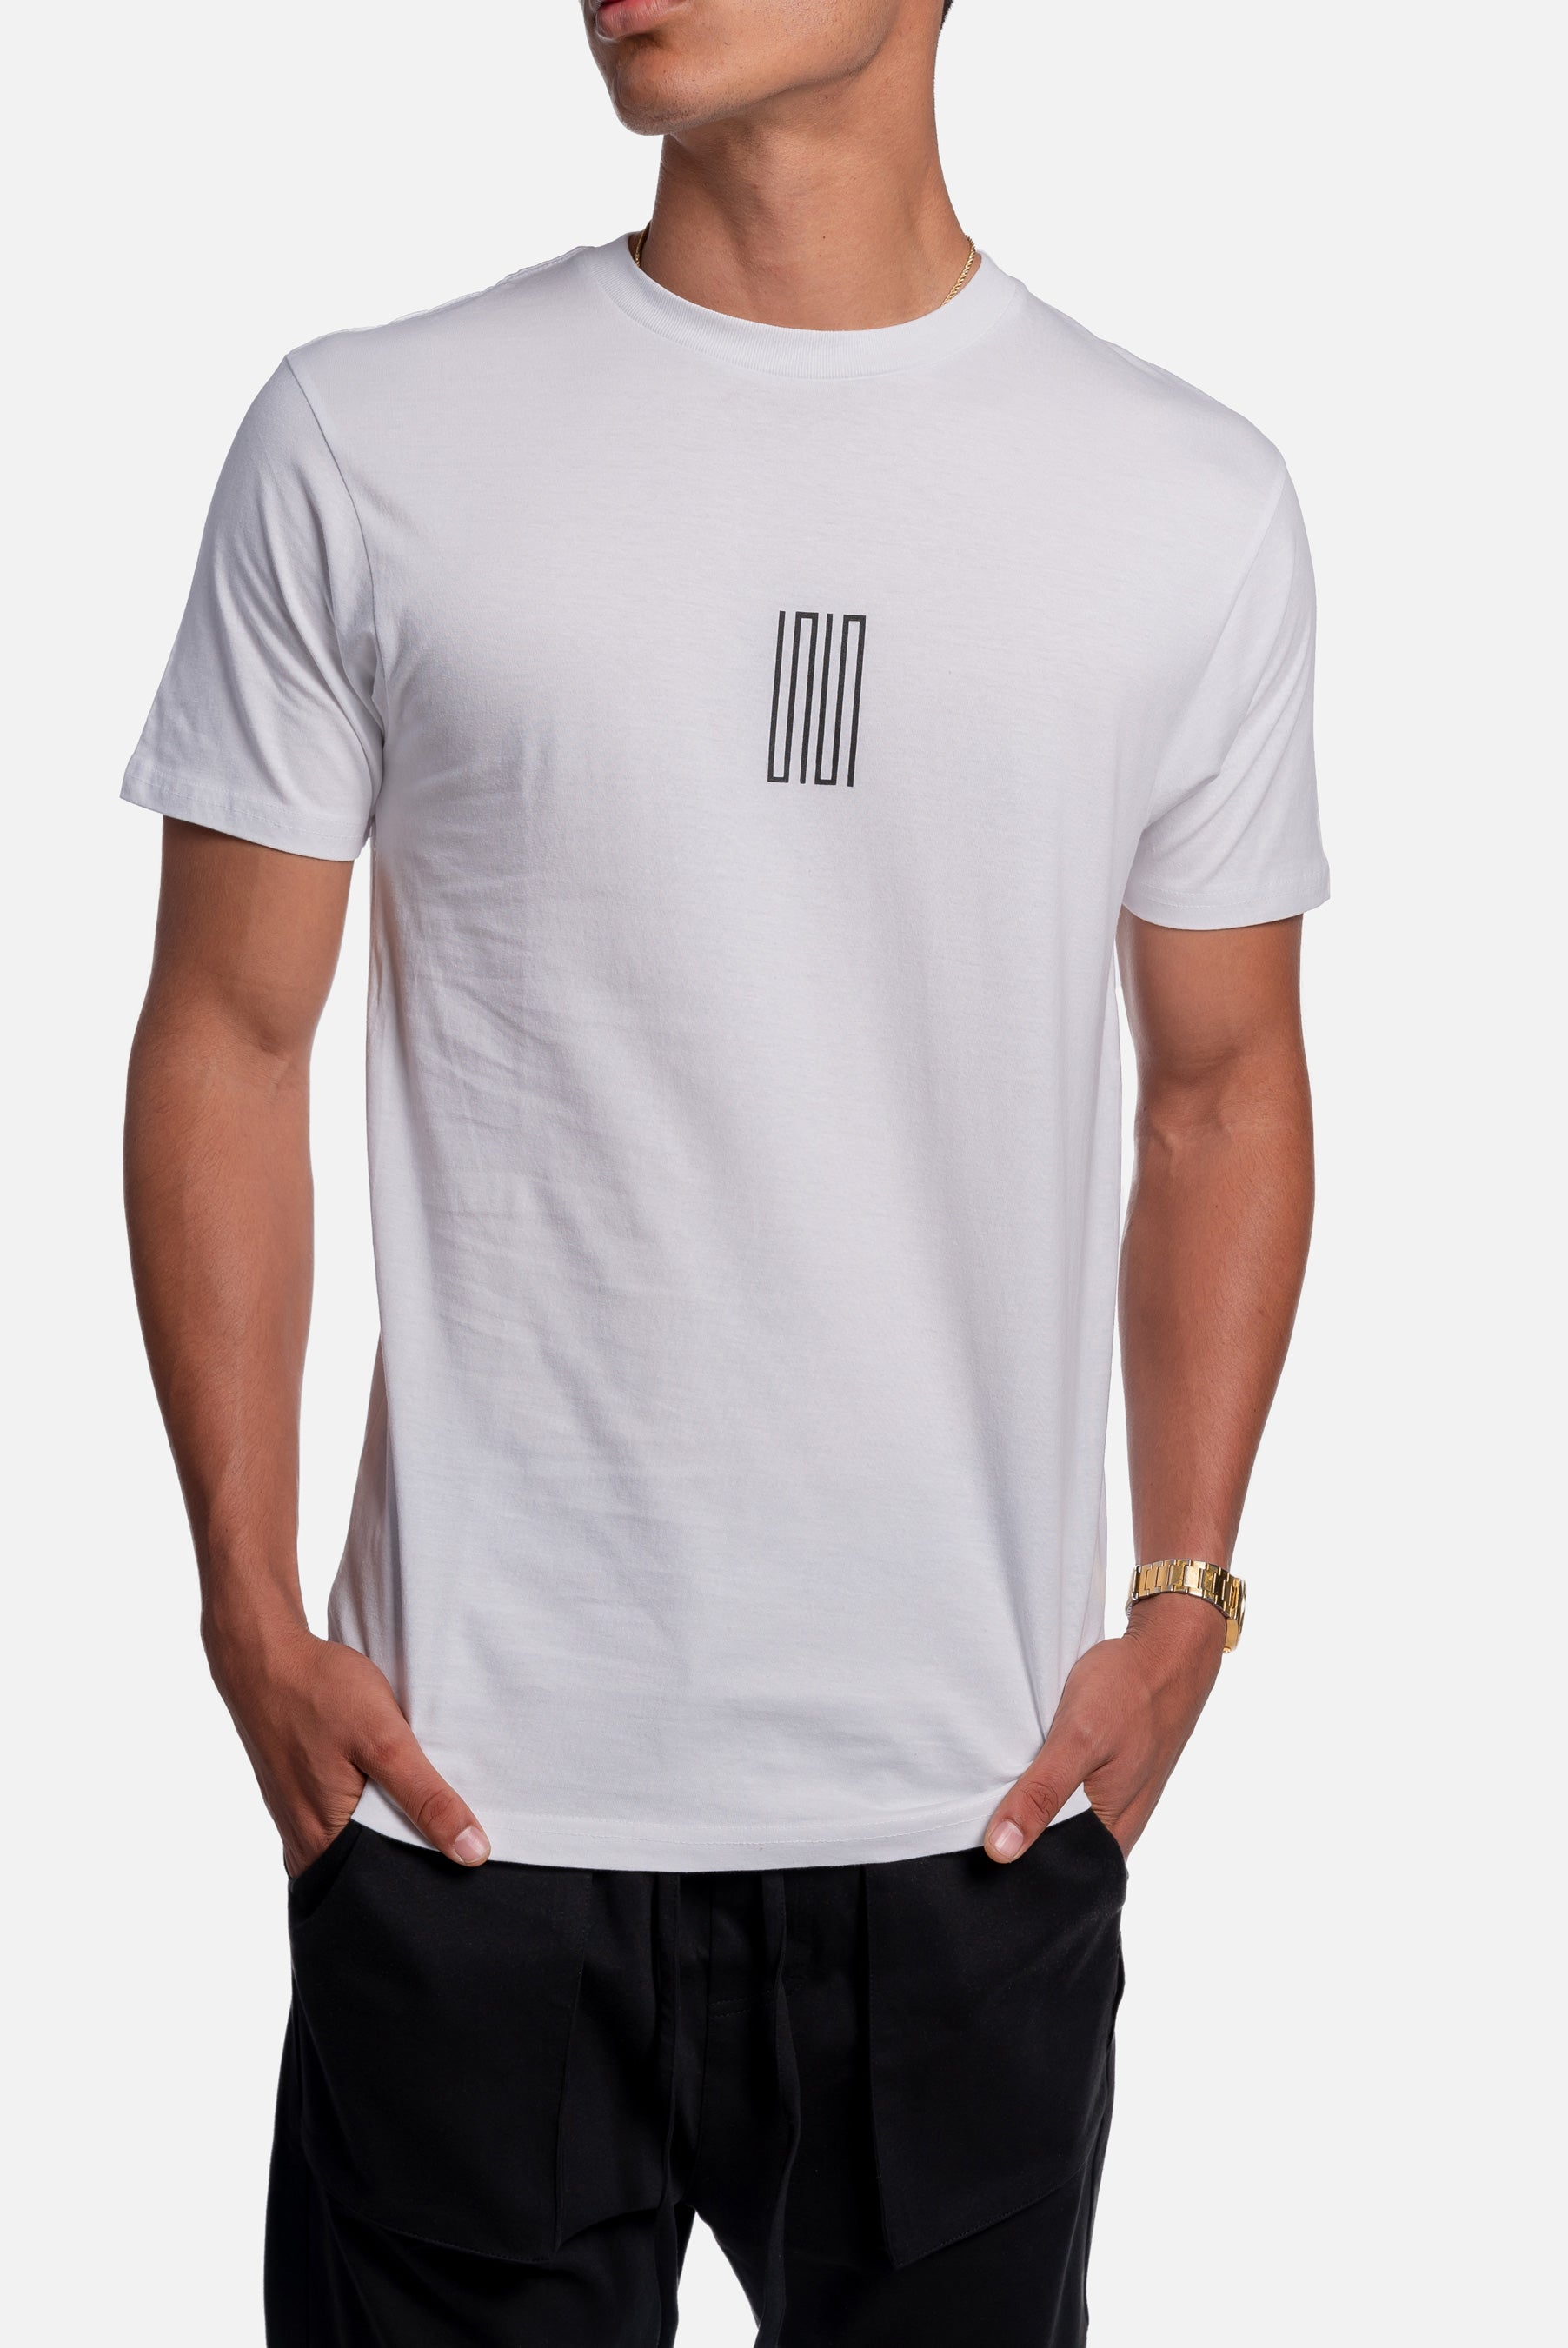 dorian article 1 logo tee - scrt society